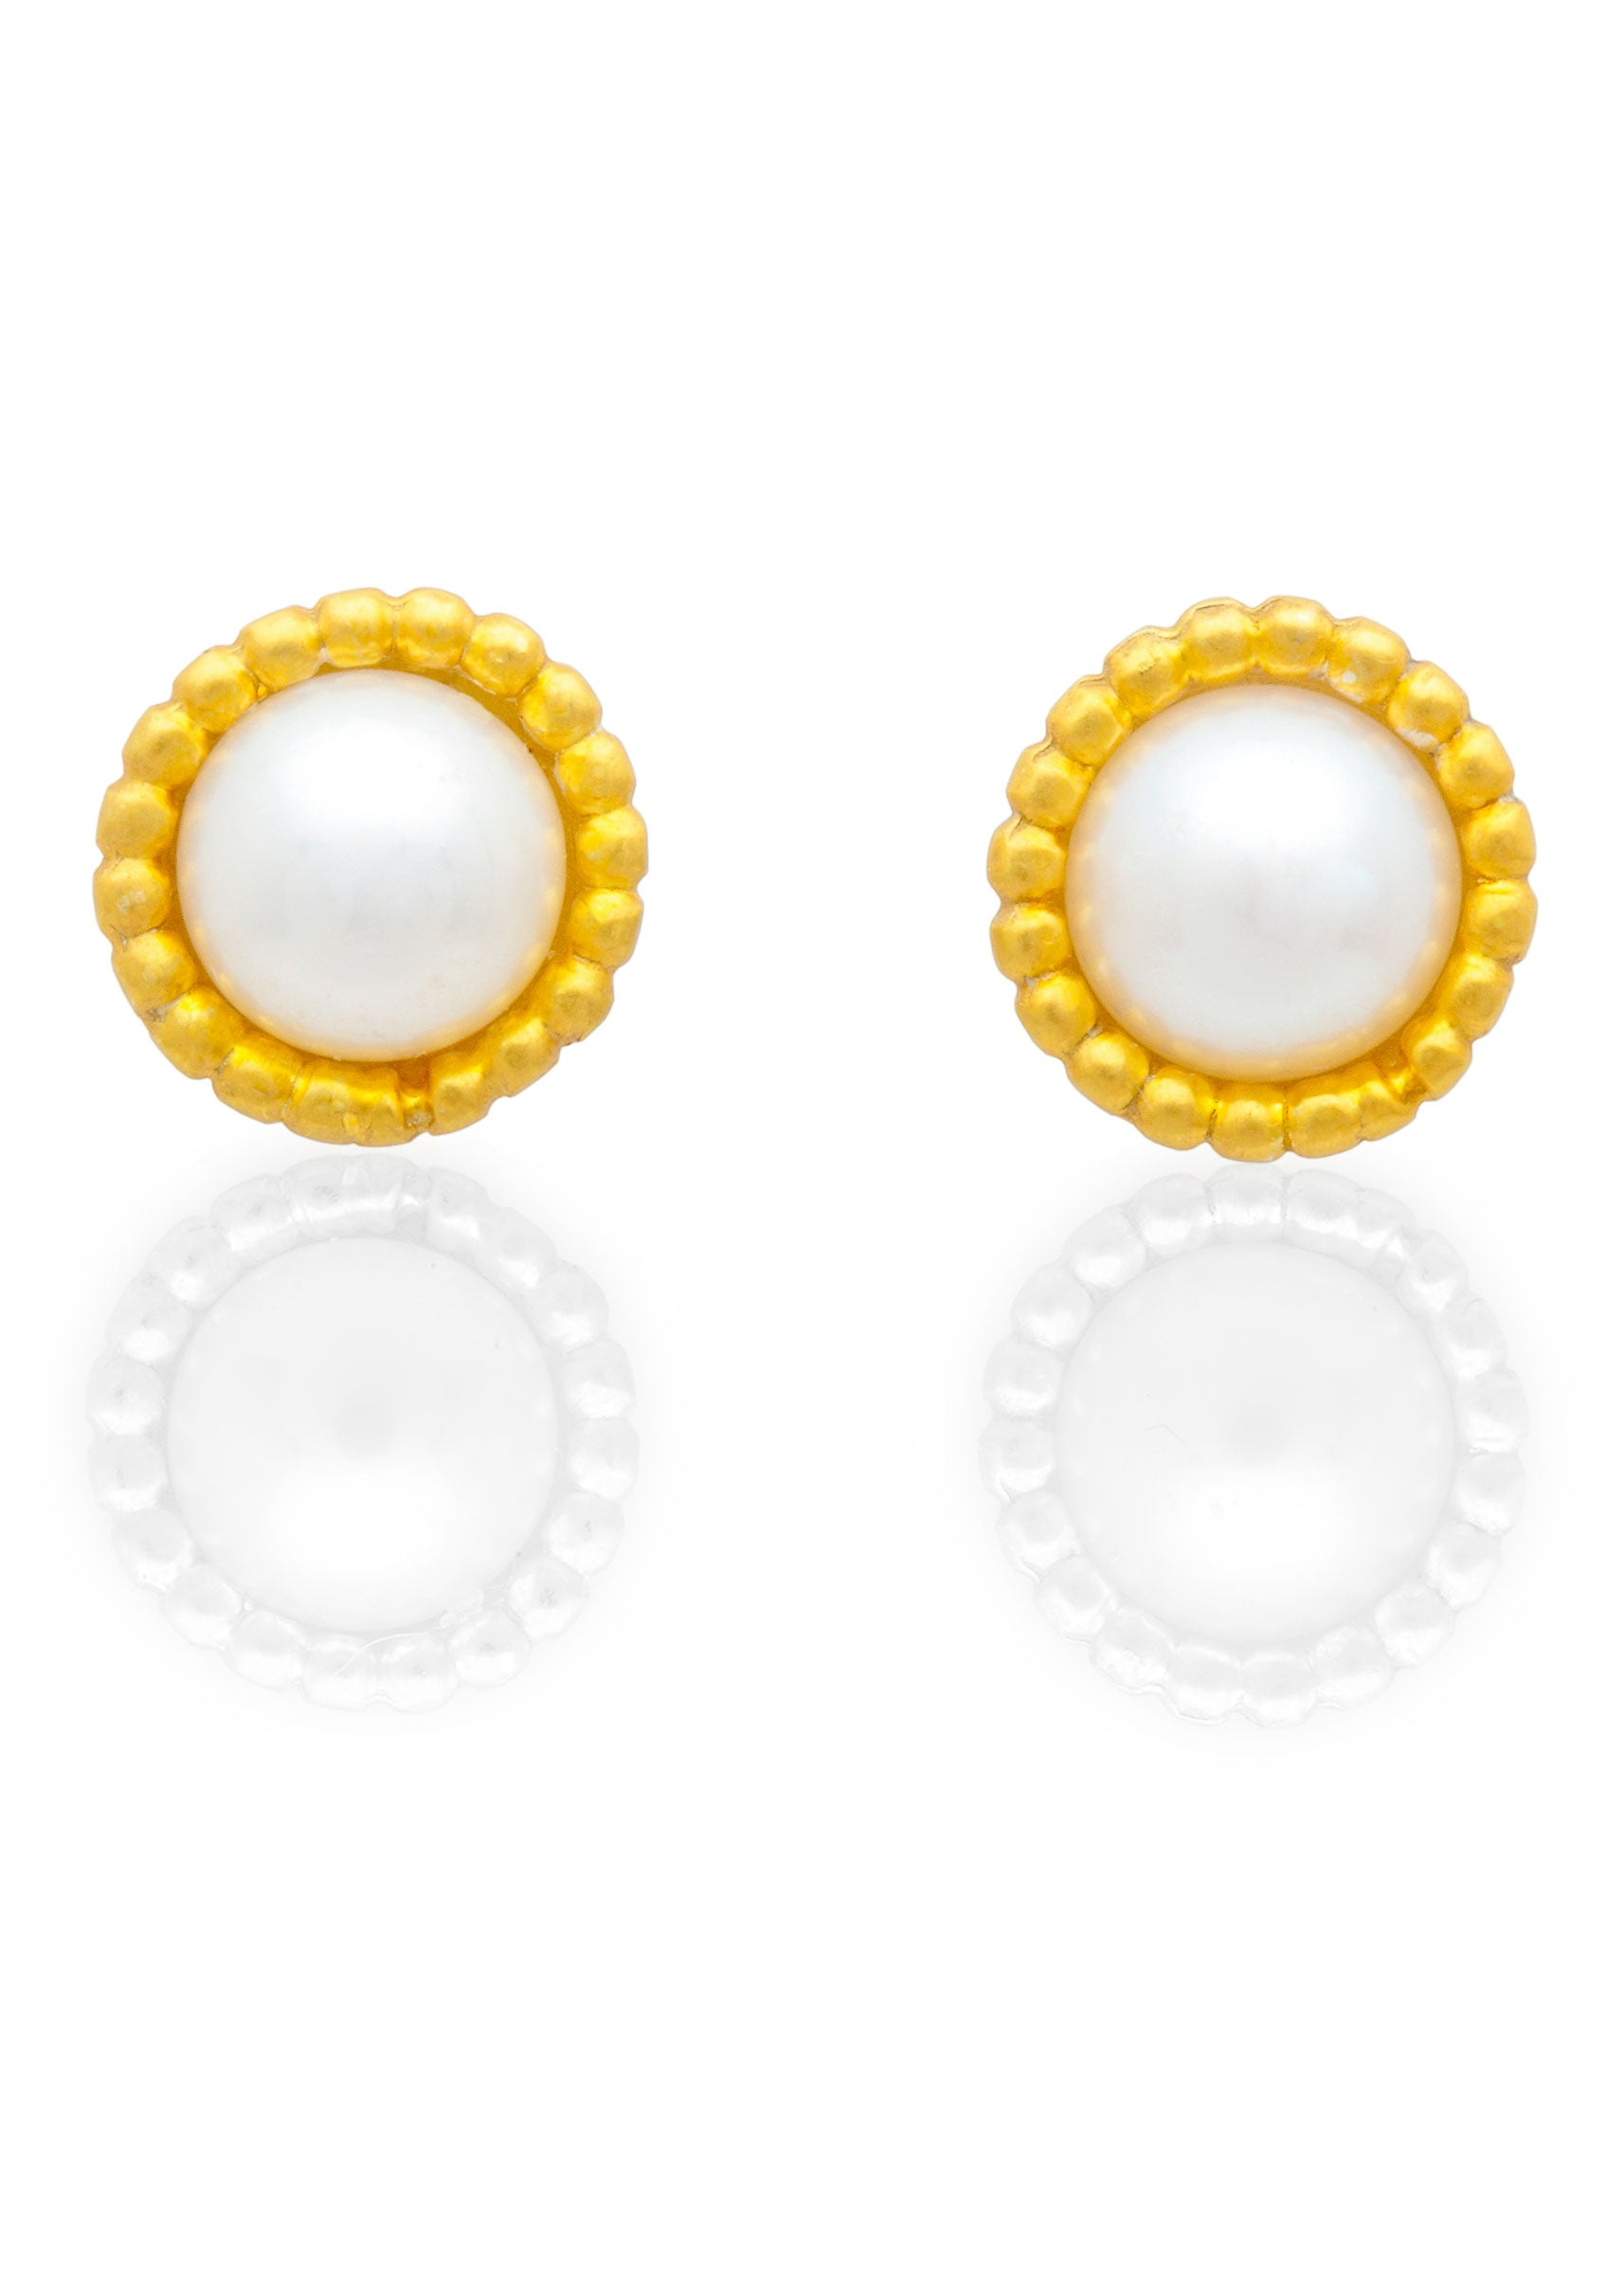 Byzantine domed freshwater pearl stud earrings